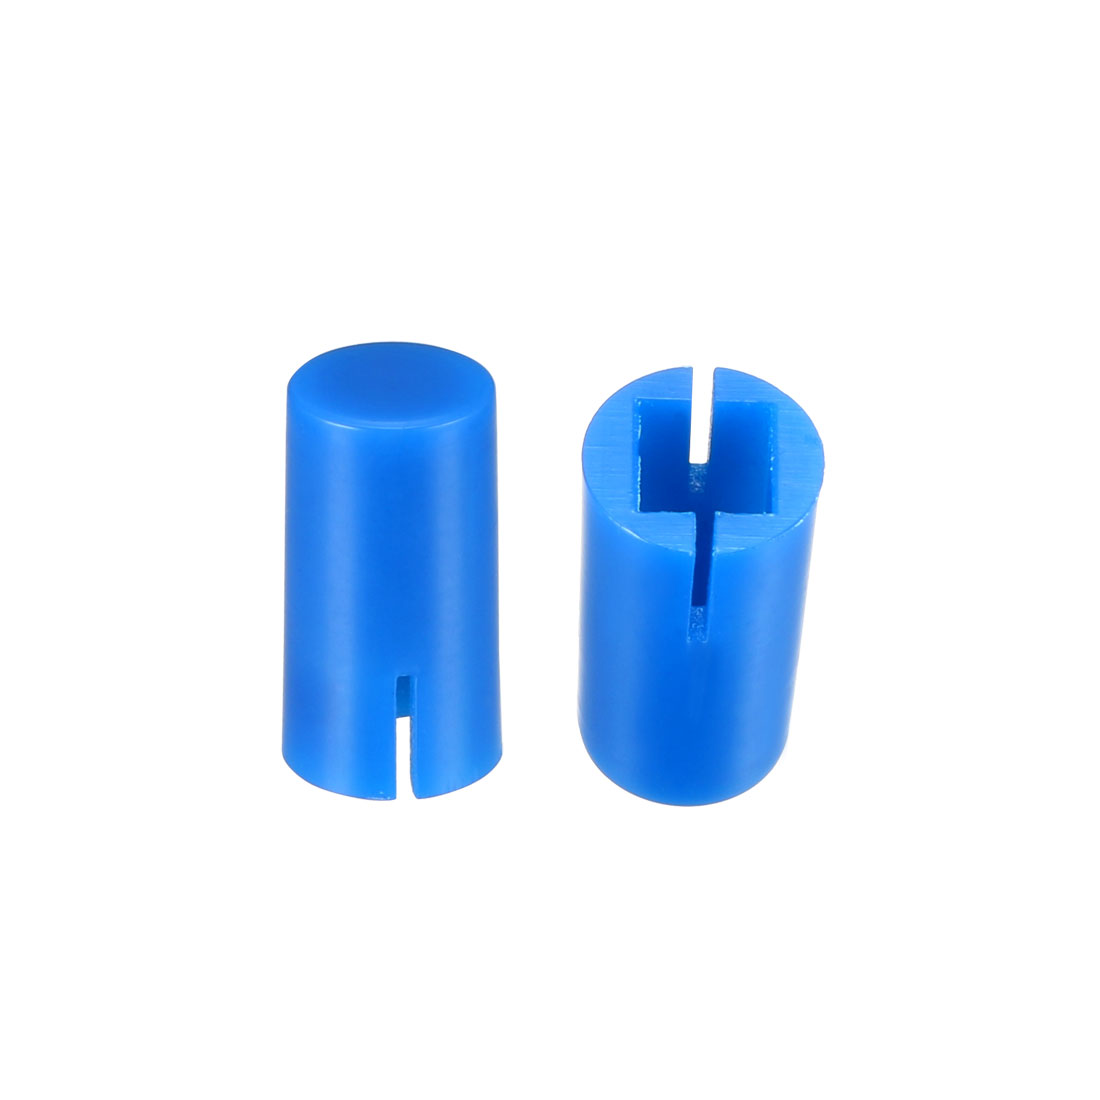 50Pcs 5x9mm Pushbutton Tactile Switch Caps Keycap Blue for 6x6x7.3mm Tact Switch